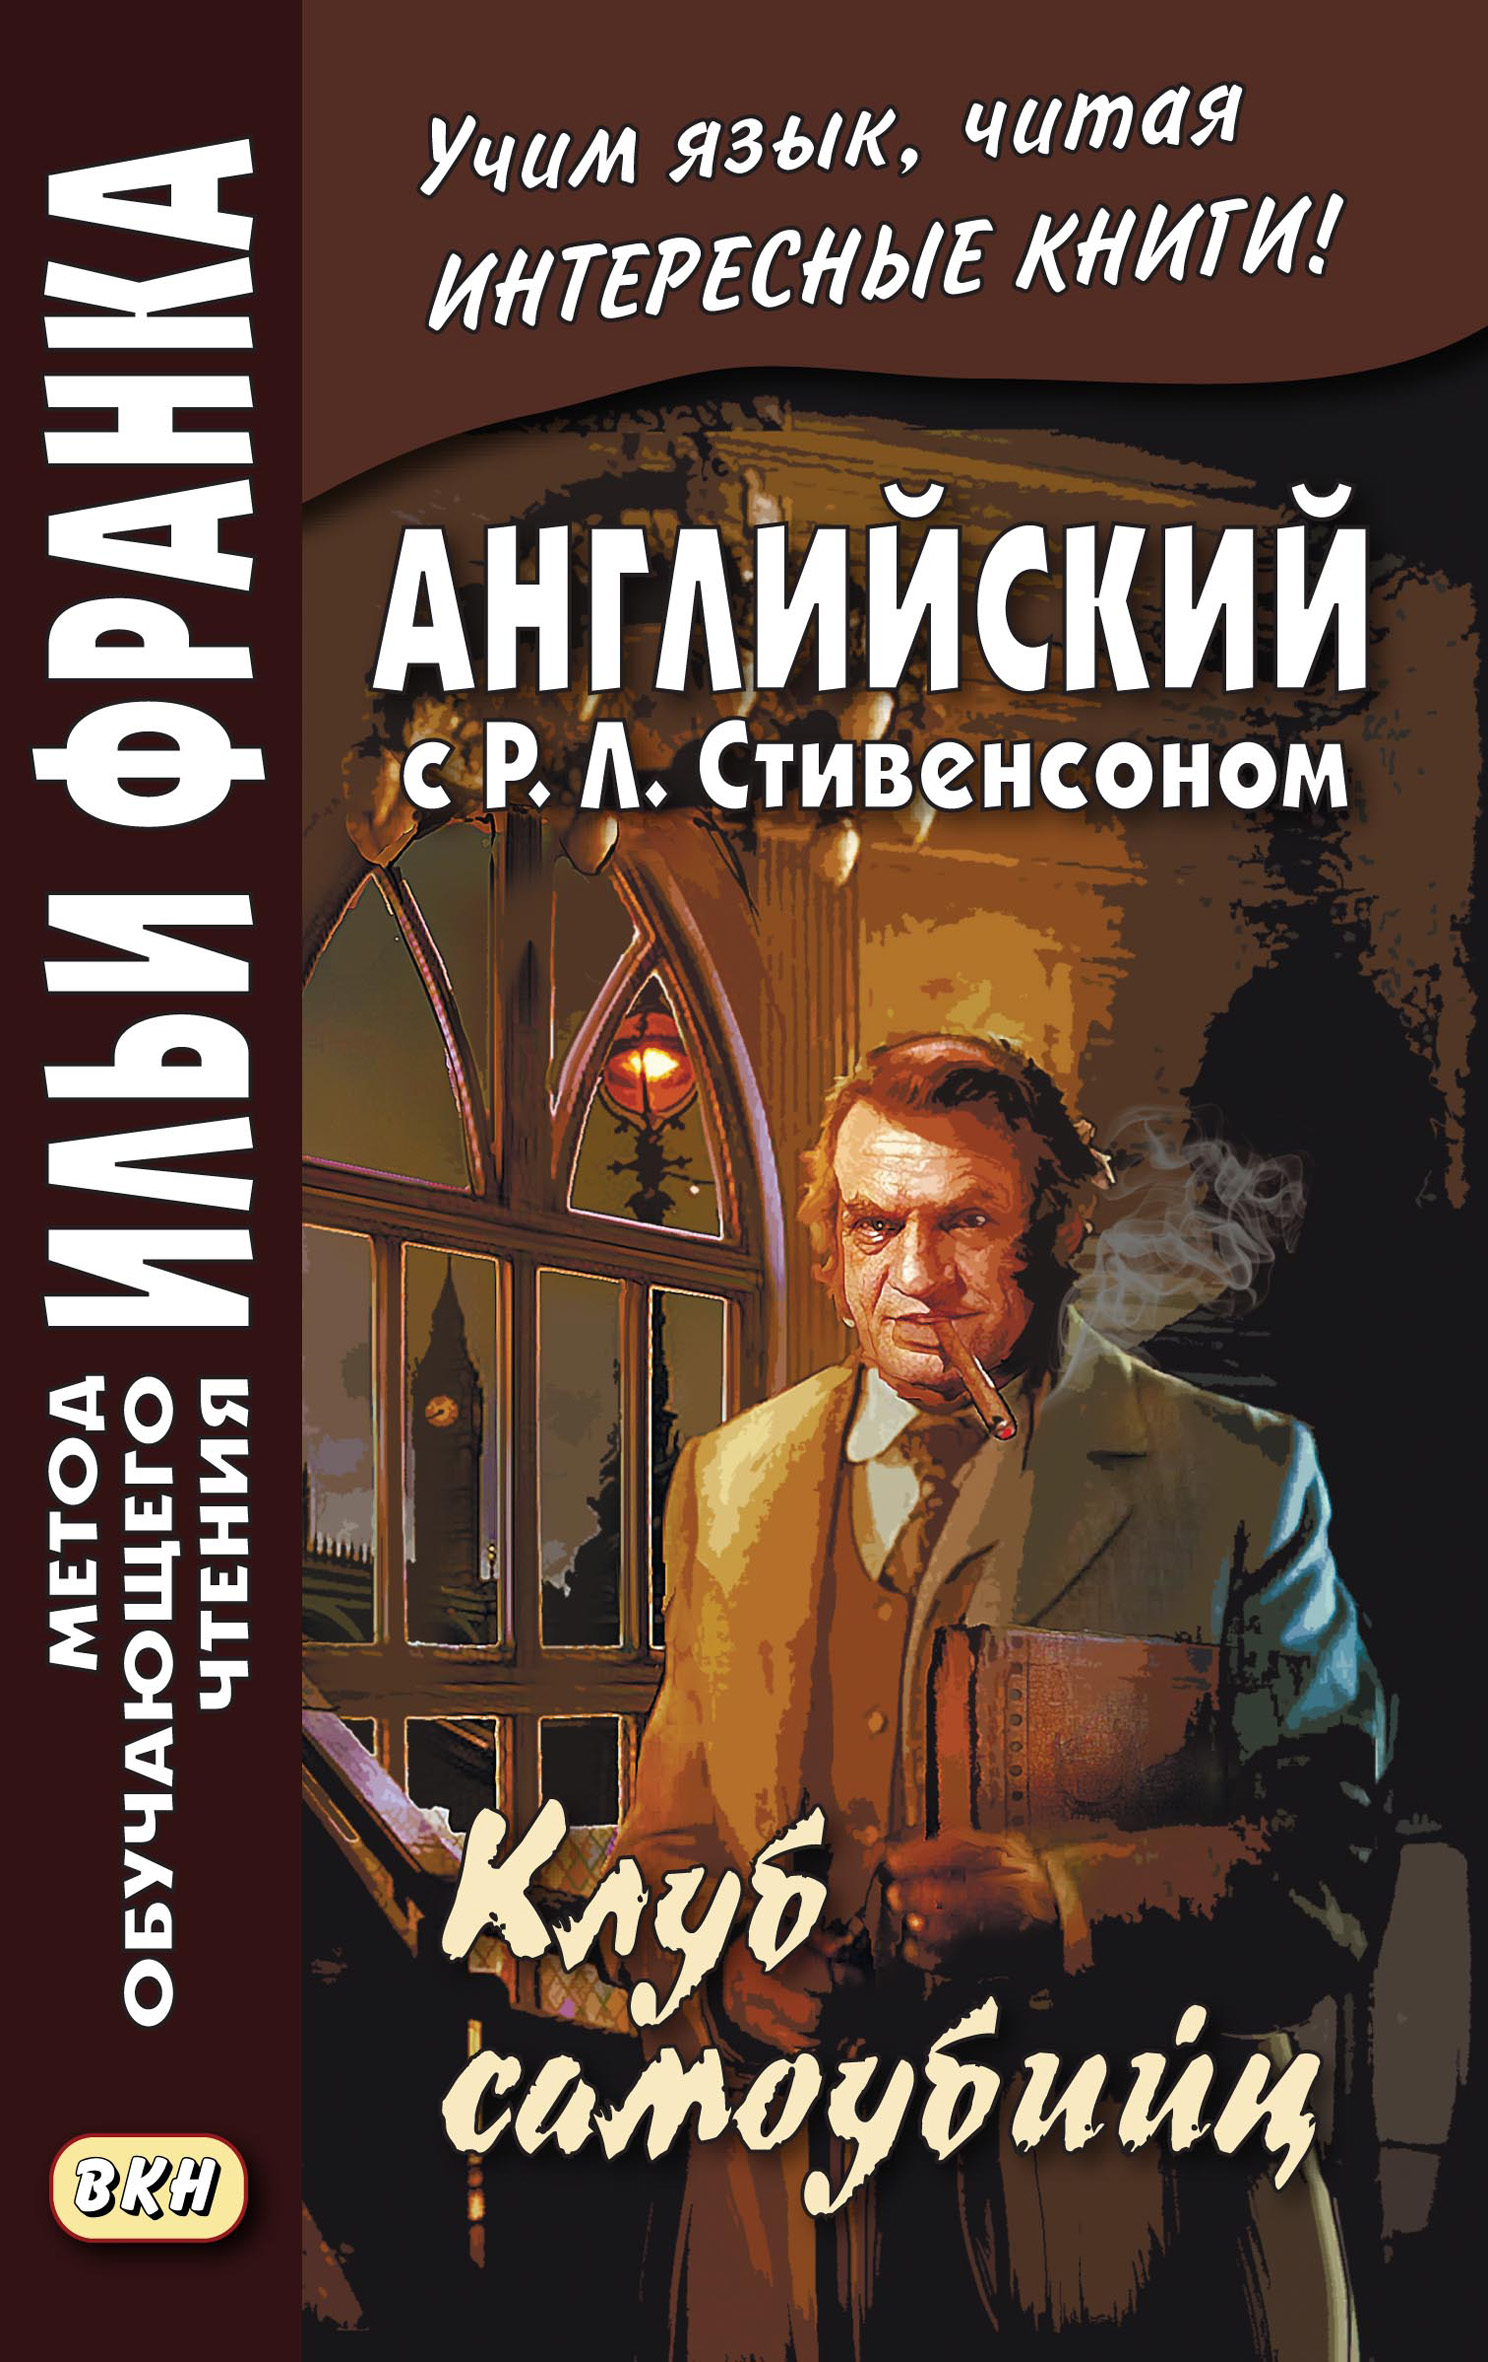 Английский с Р. Л. Стивенсоном. Клуб самоубийц / R. L. Stevenson. The Suicide Club